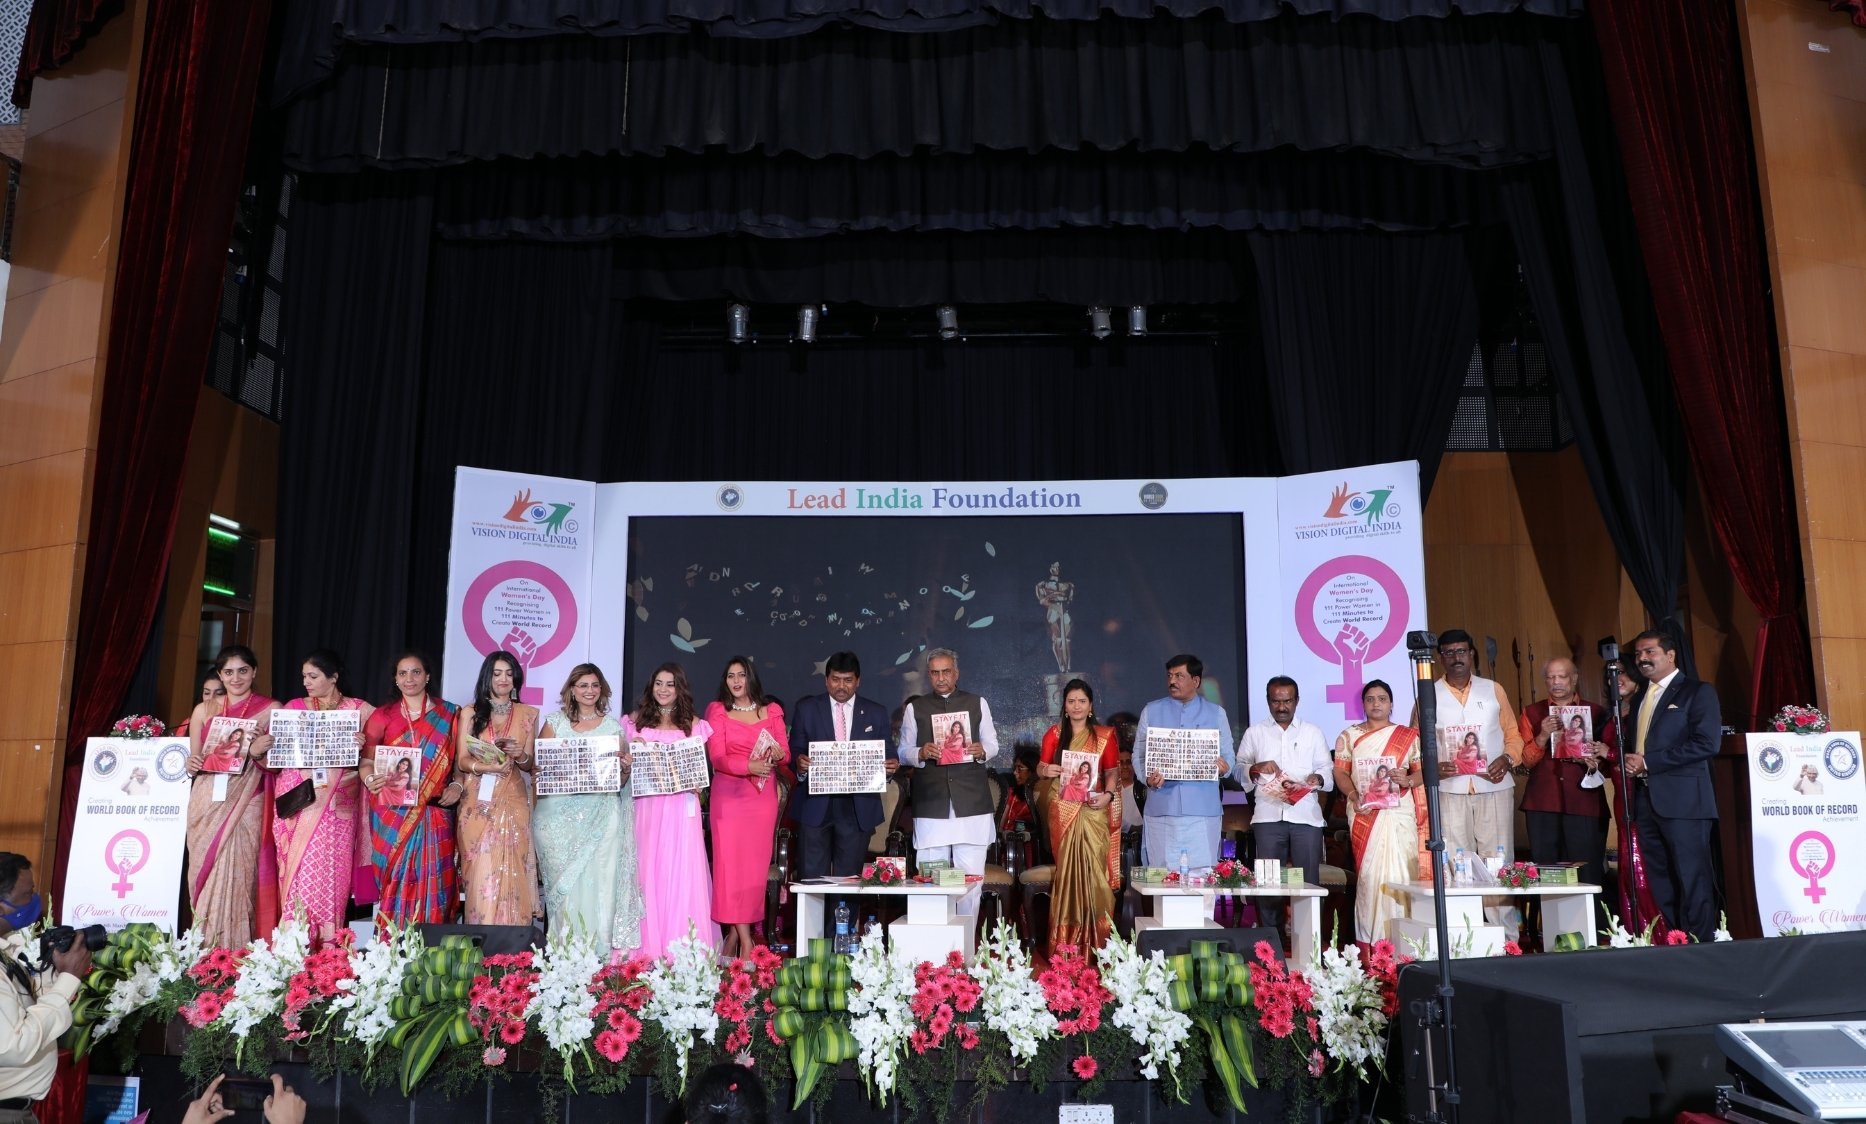 Lead India Foundation Creates World Record By Honouring 111 Women in 111 Minutes - Digpu News